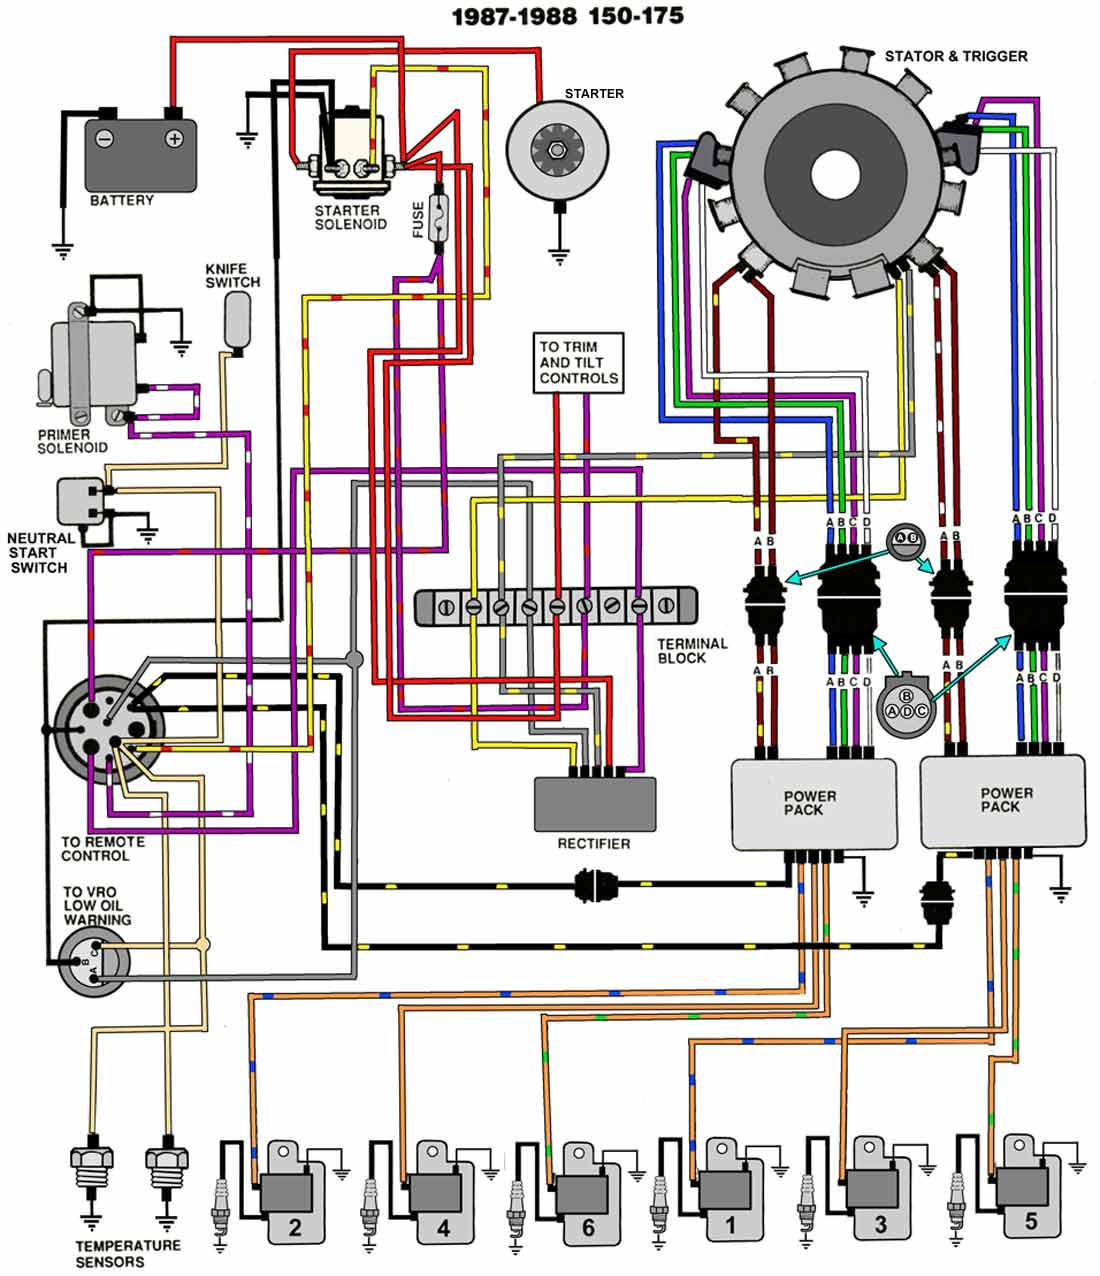 Yd 9230 1987 50 Hp Johnson Wiring Diagram